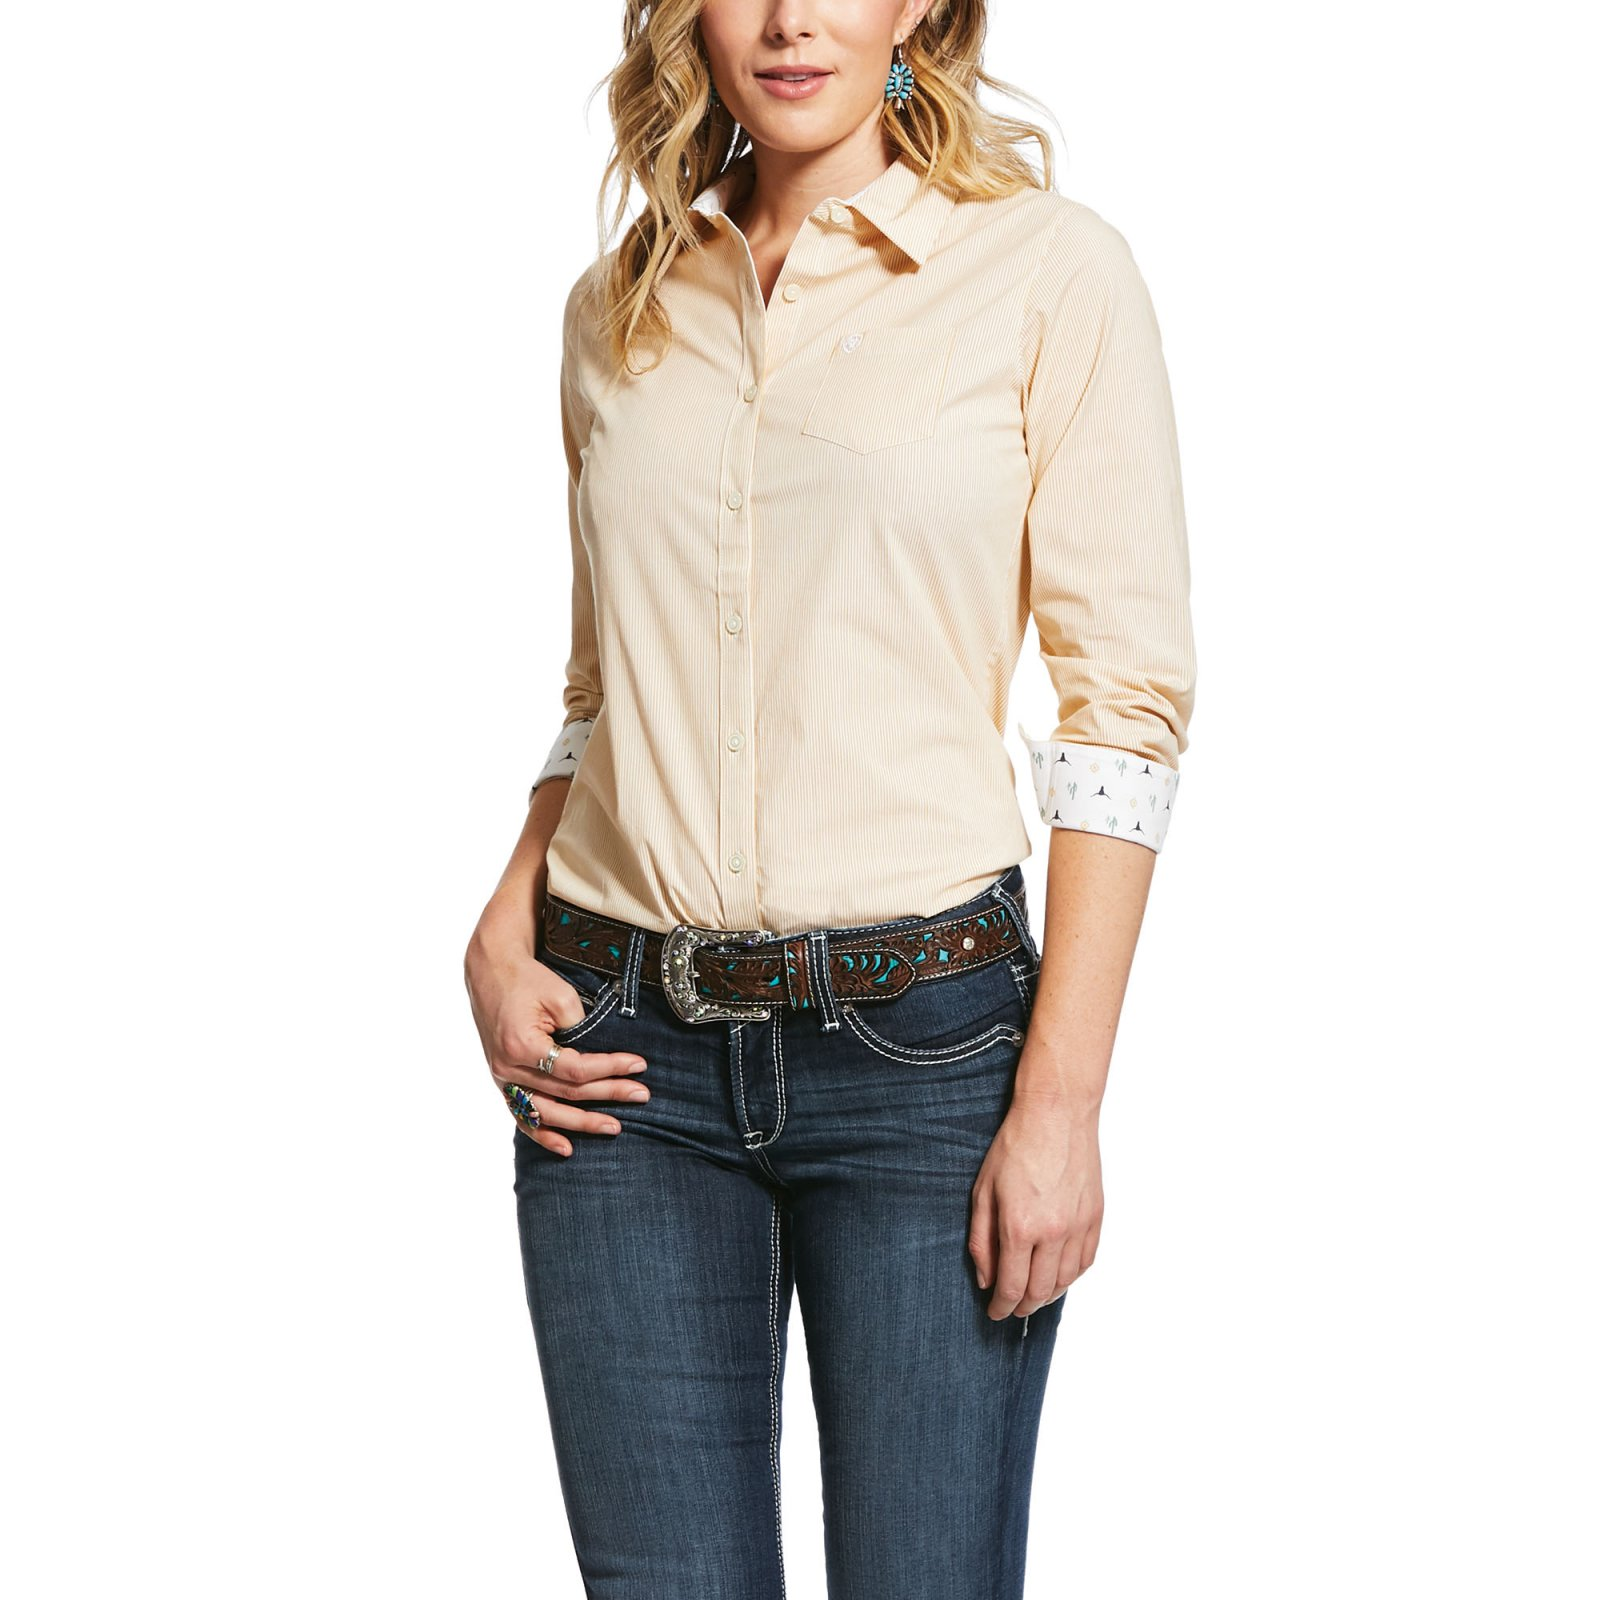 Kirby Stretch Shirt from Ariat